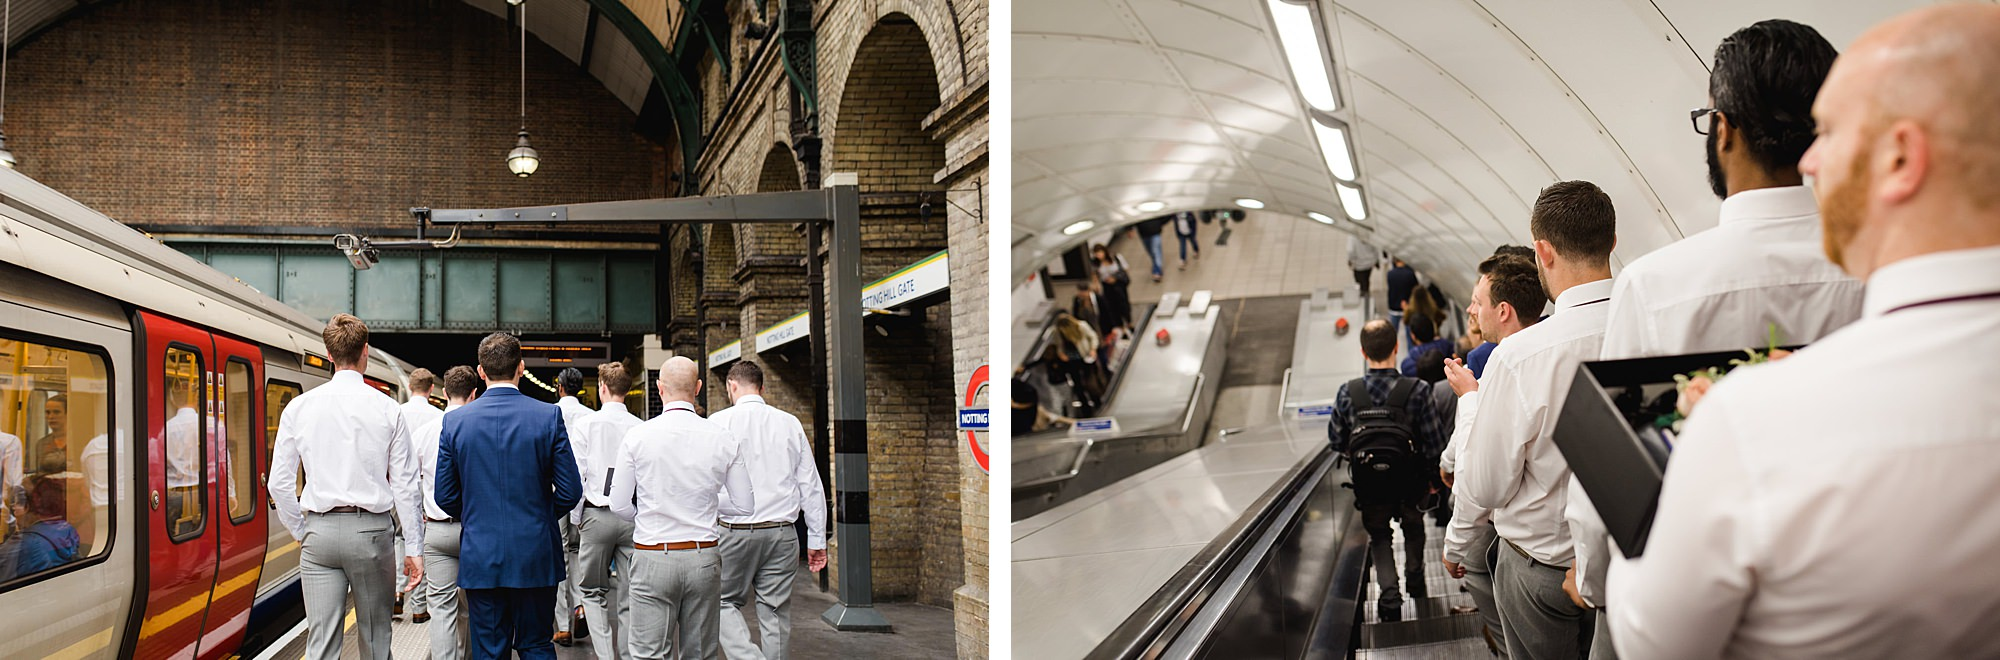 groomsmen walking through tube station